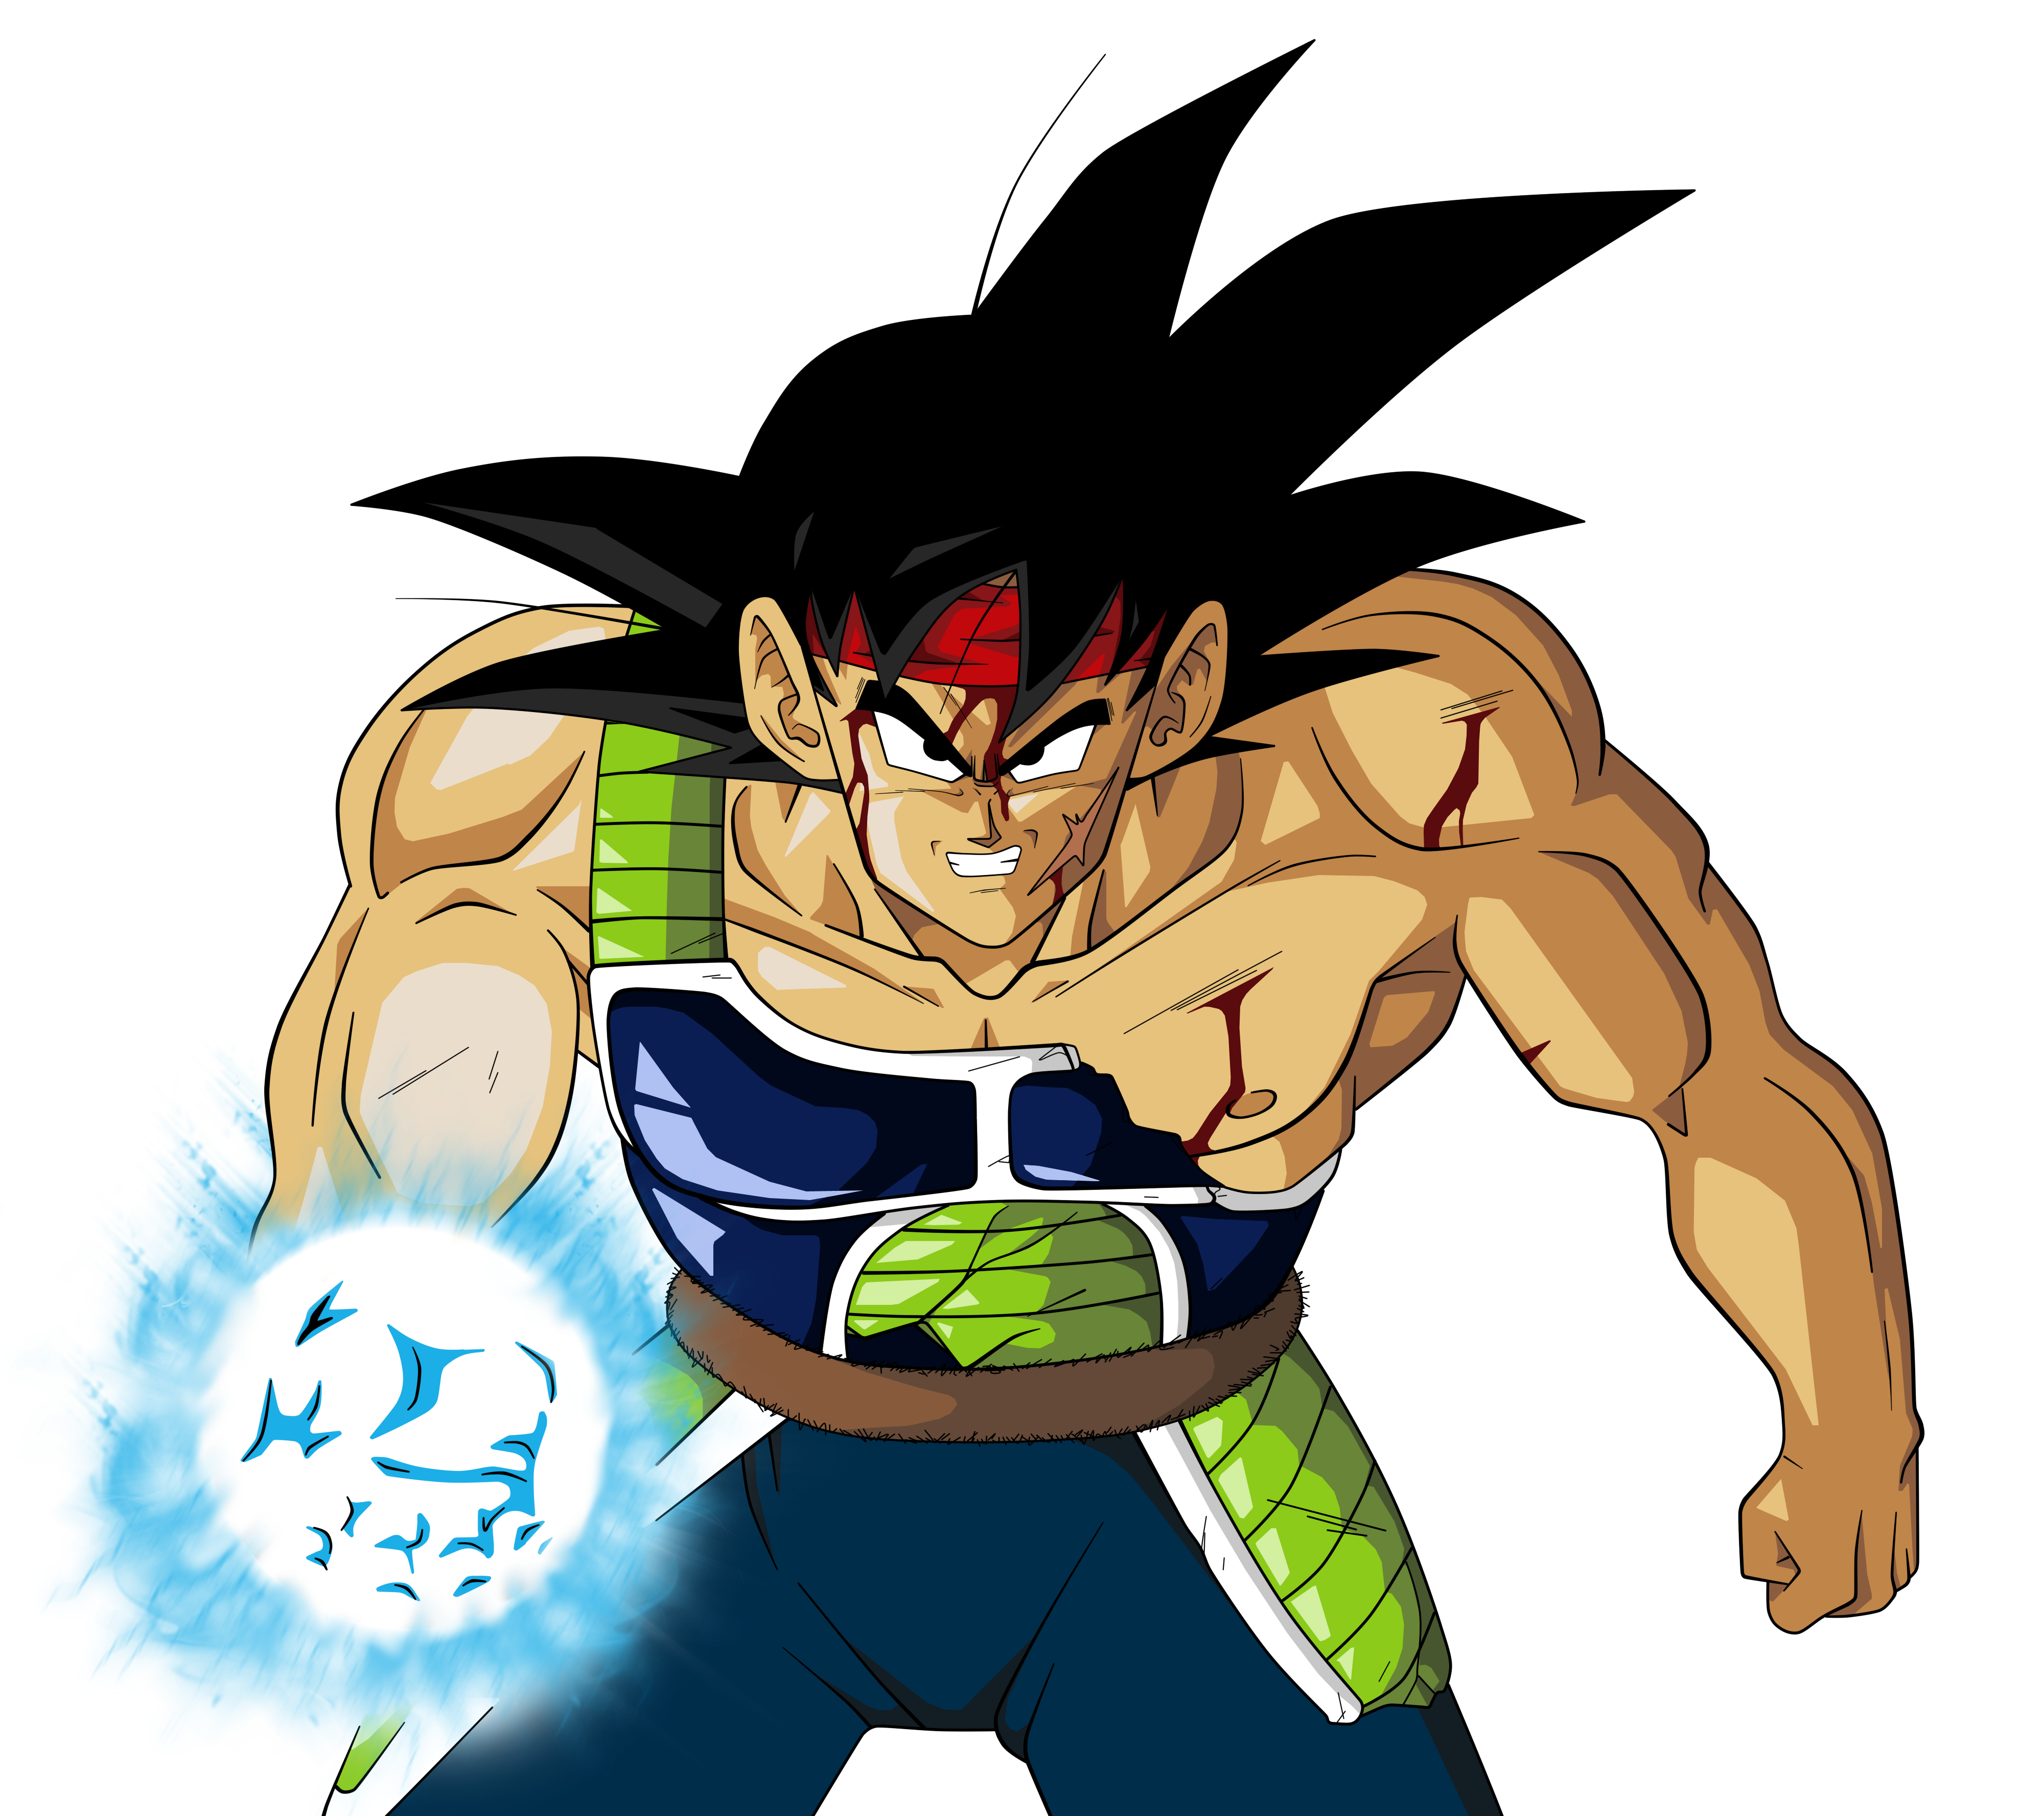 Dbz Clipart at GetDrawings com | Free for personal use Dbz